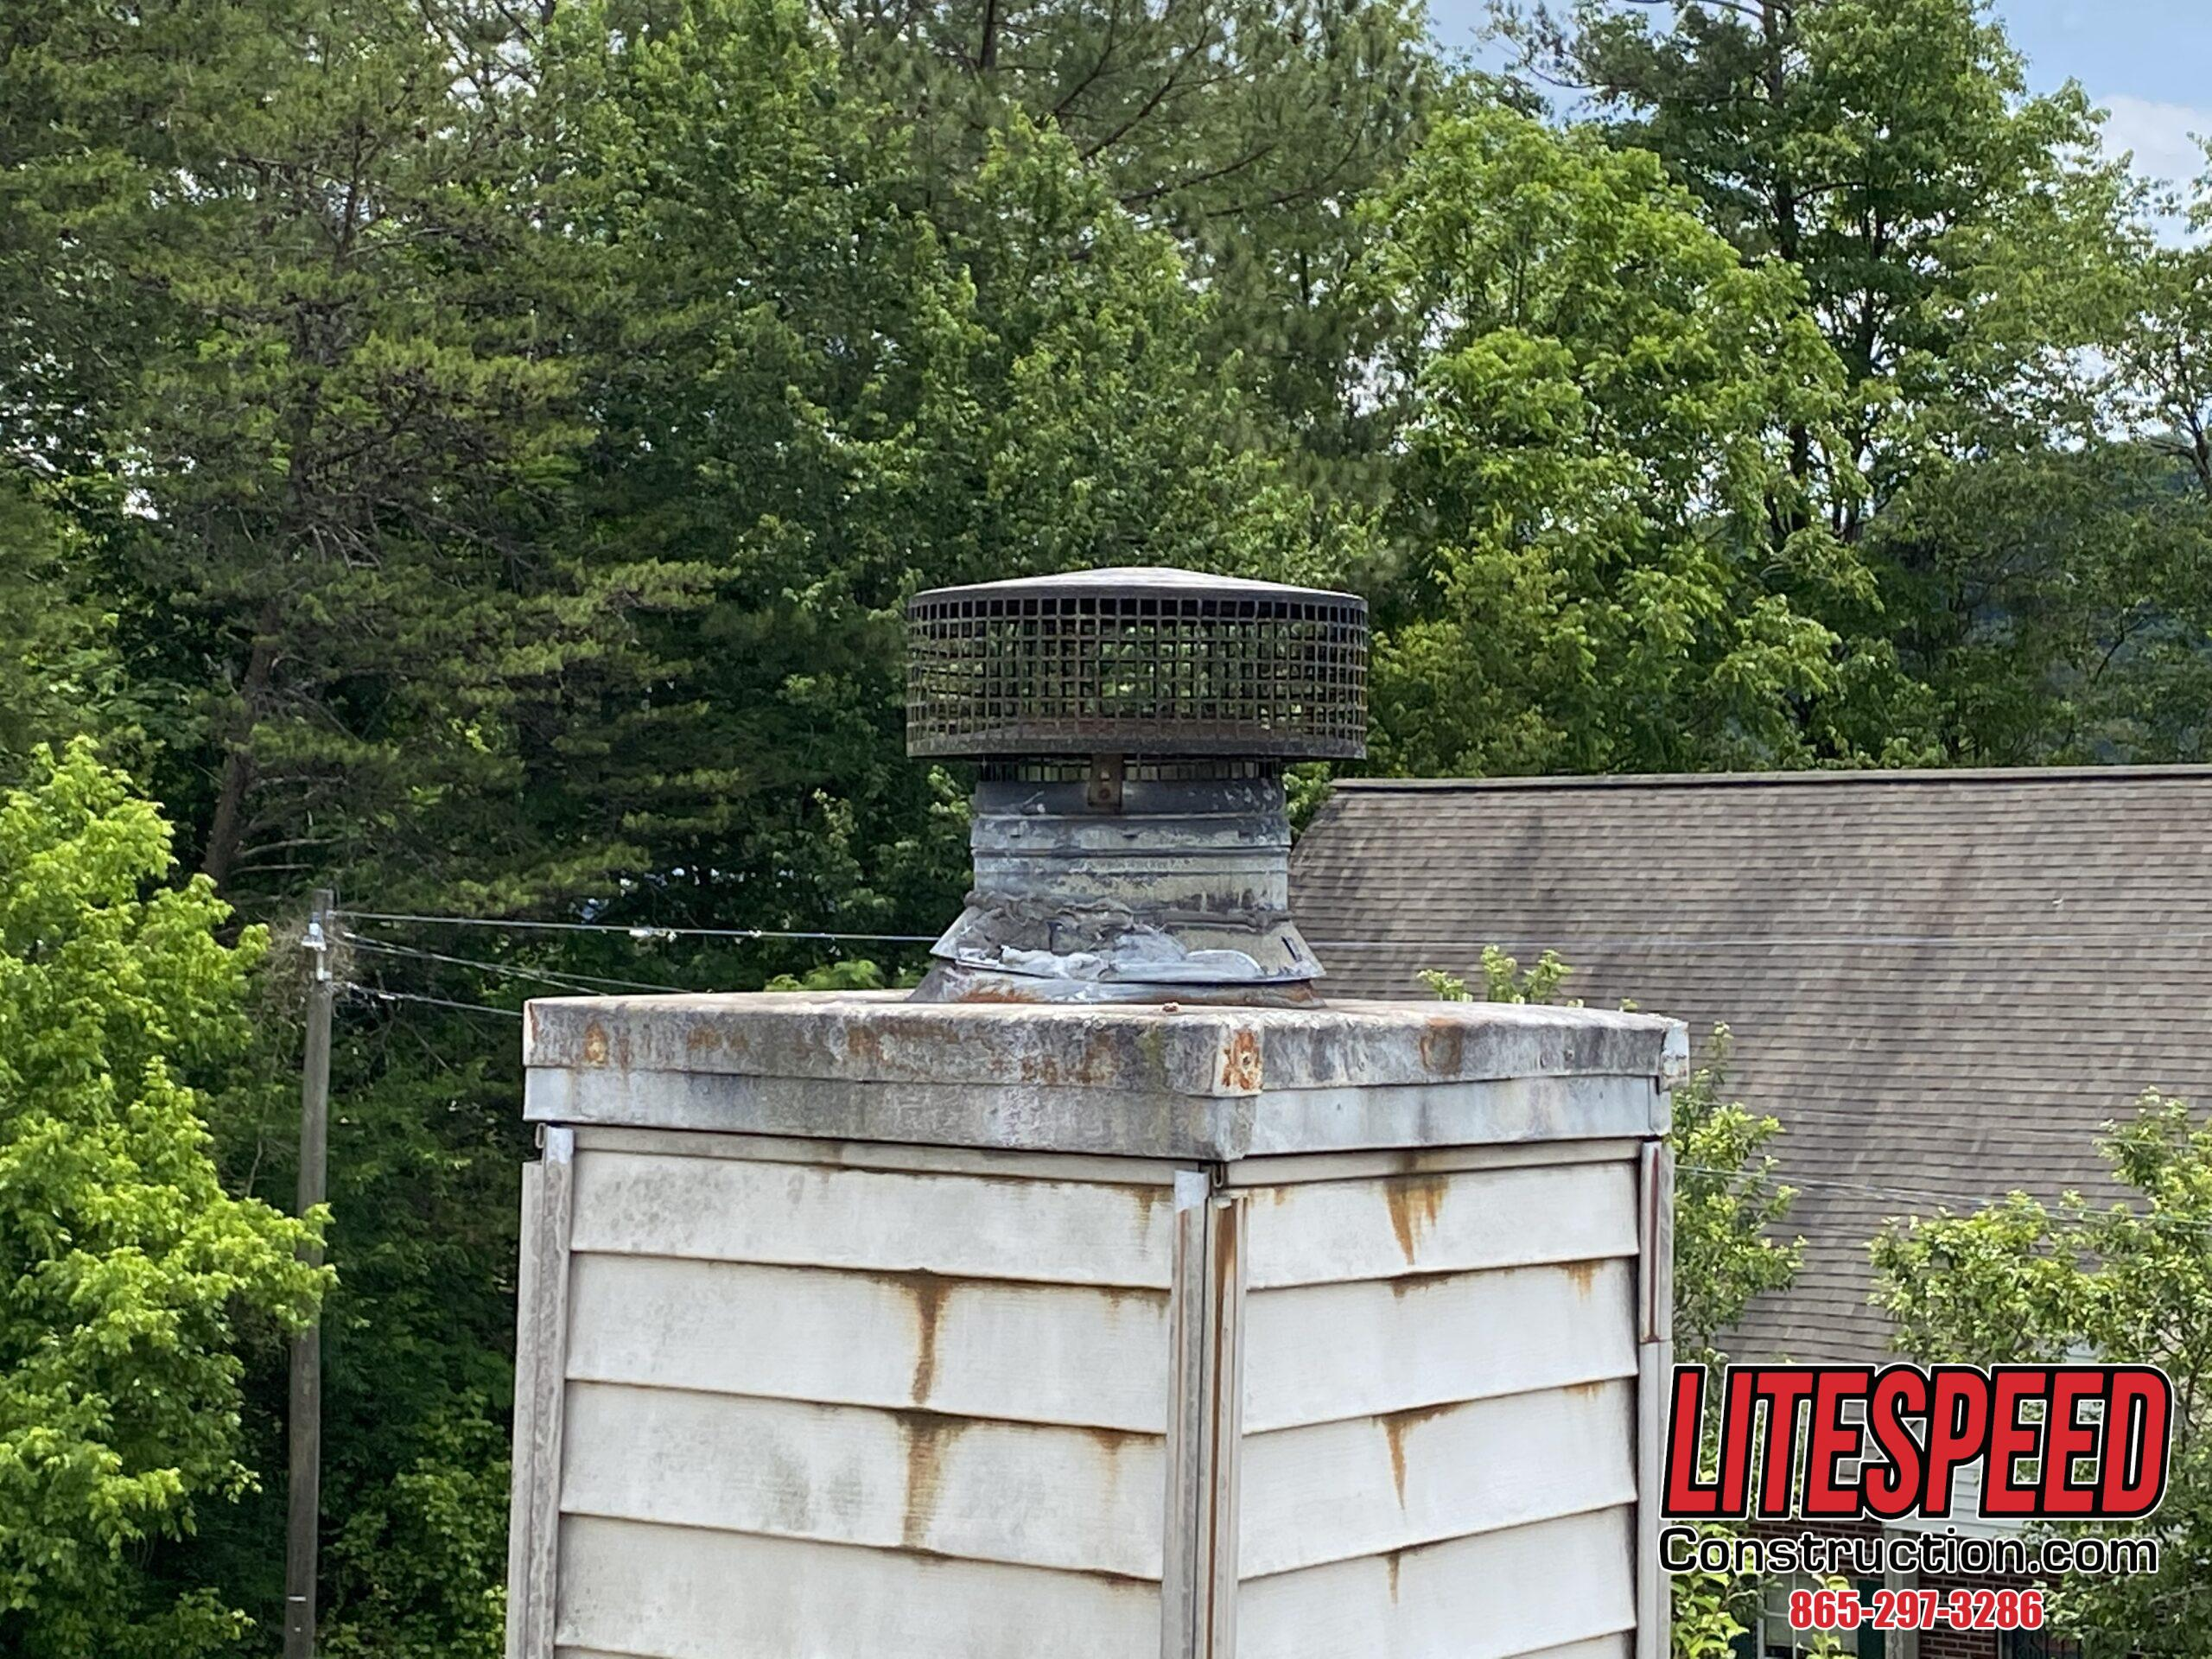 This is a picture of an old rusty chimney cap on a steep roof